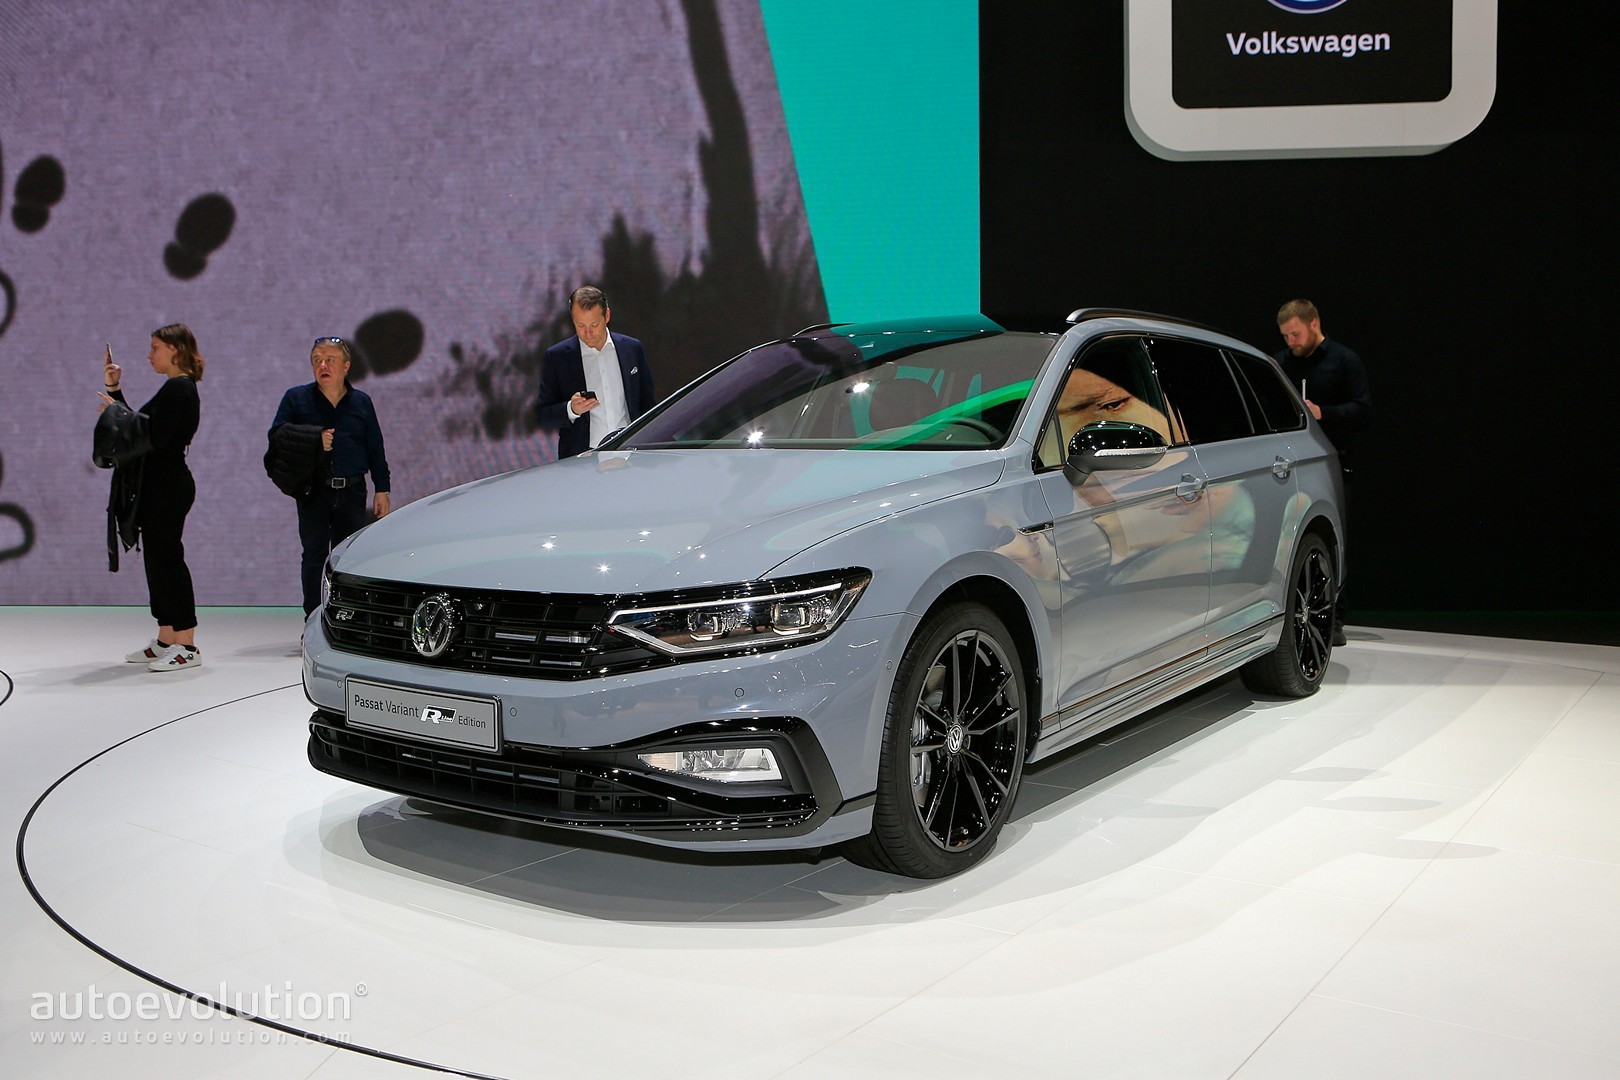 Volkswagen Passat EV Will Probably Arrive As Early As 3